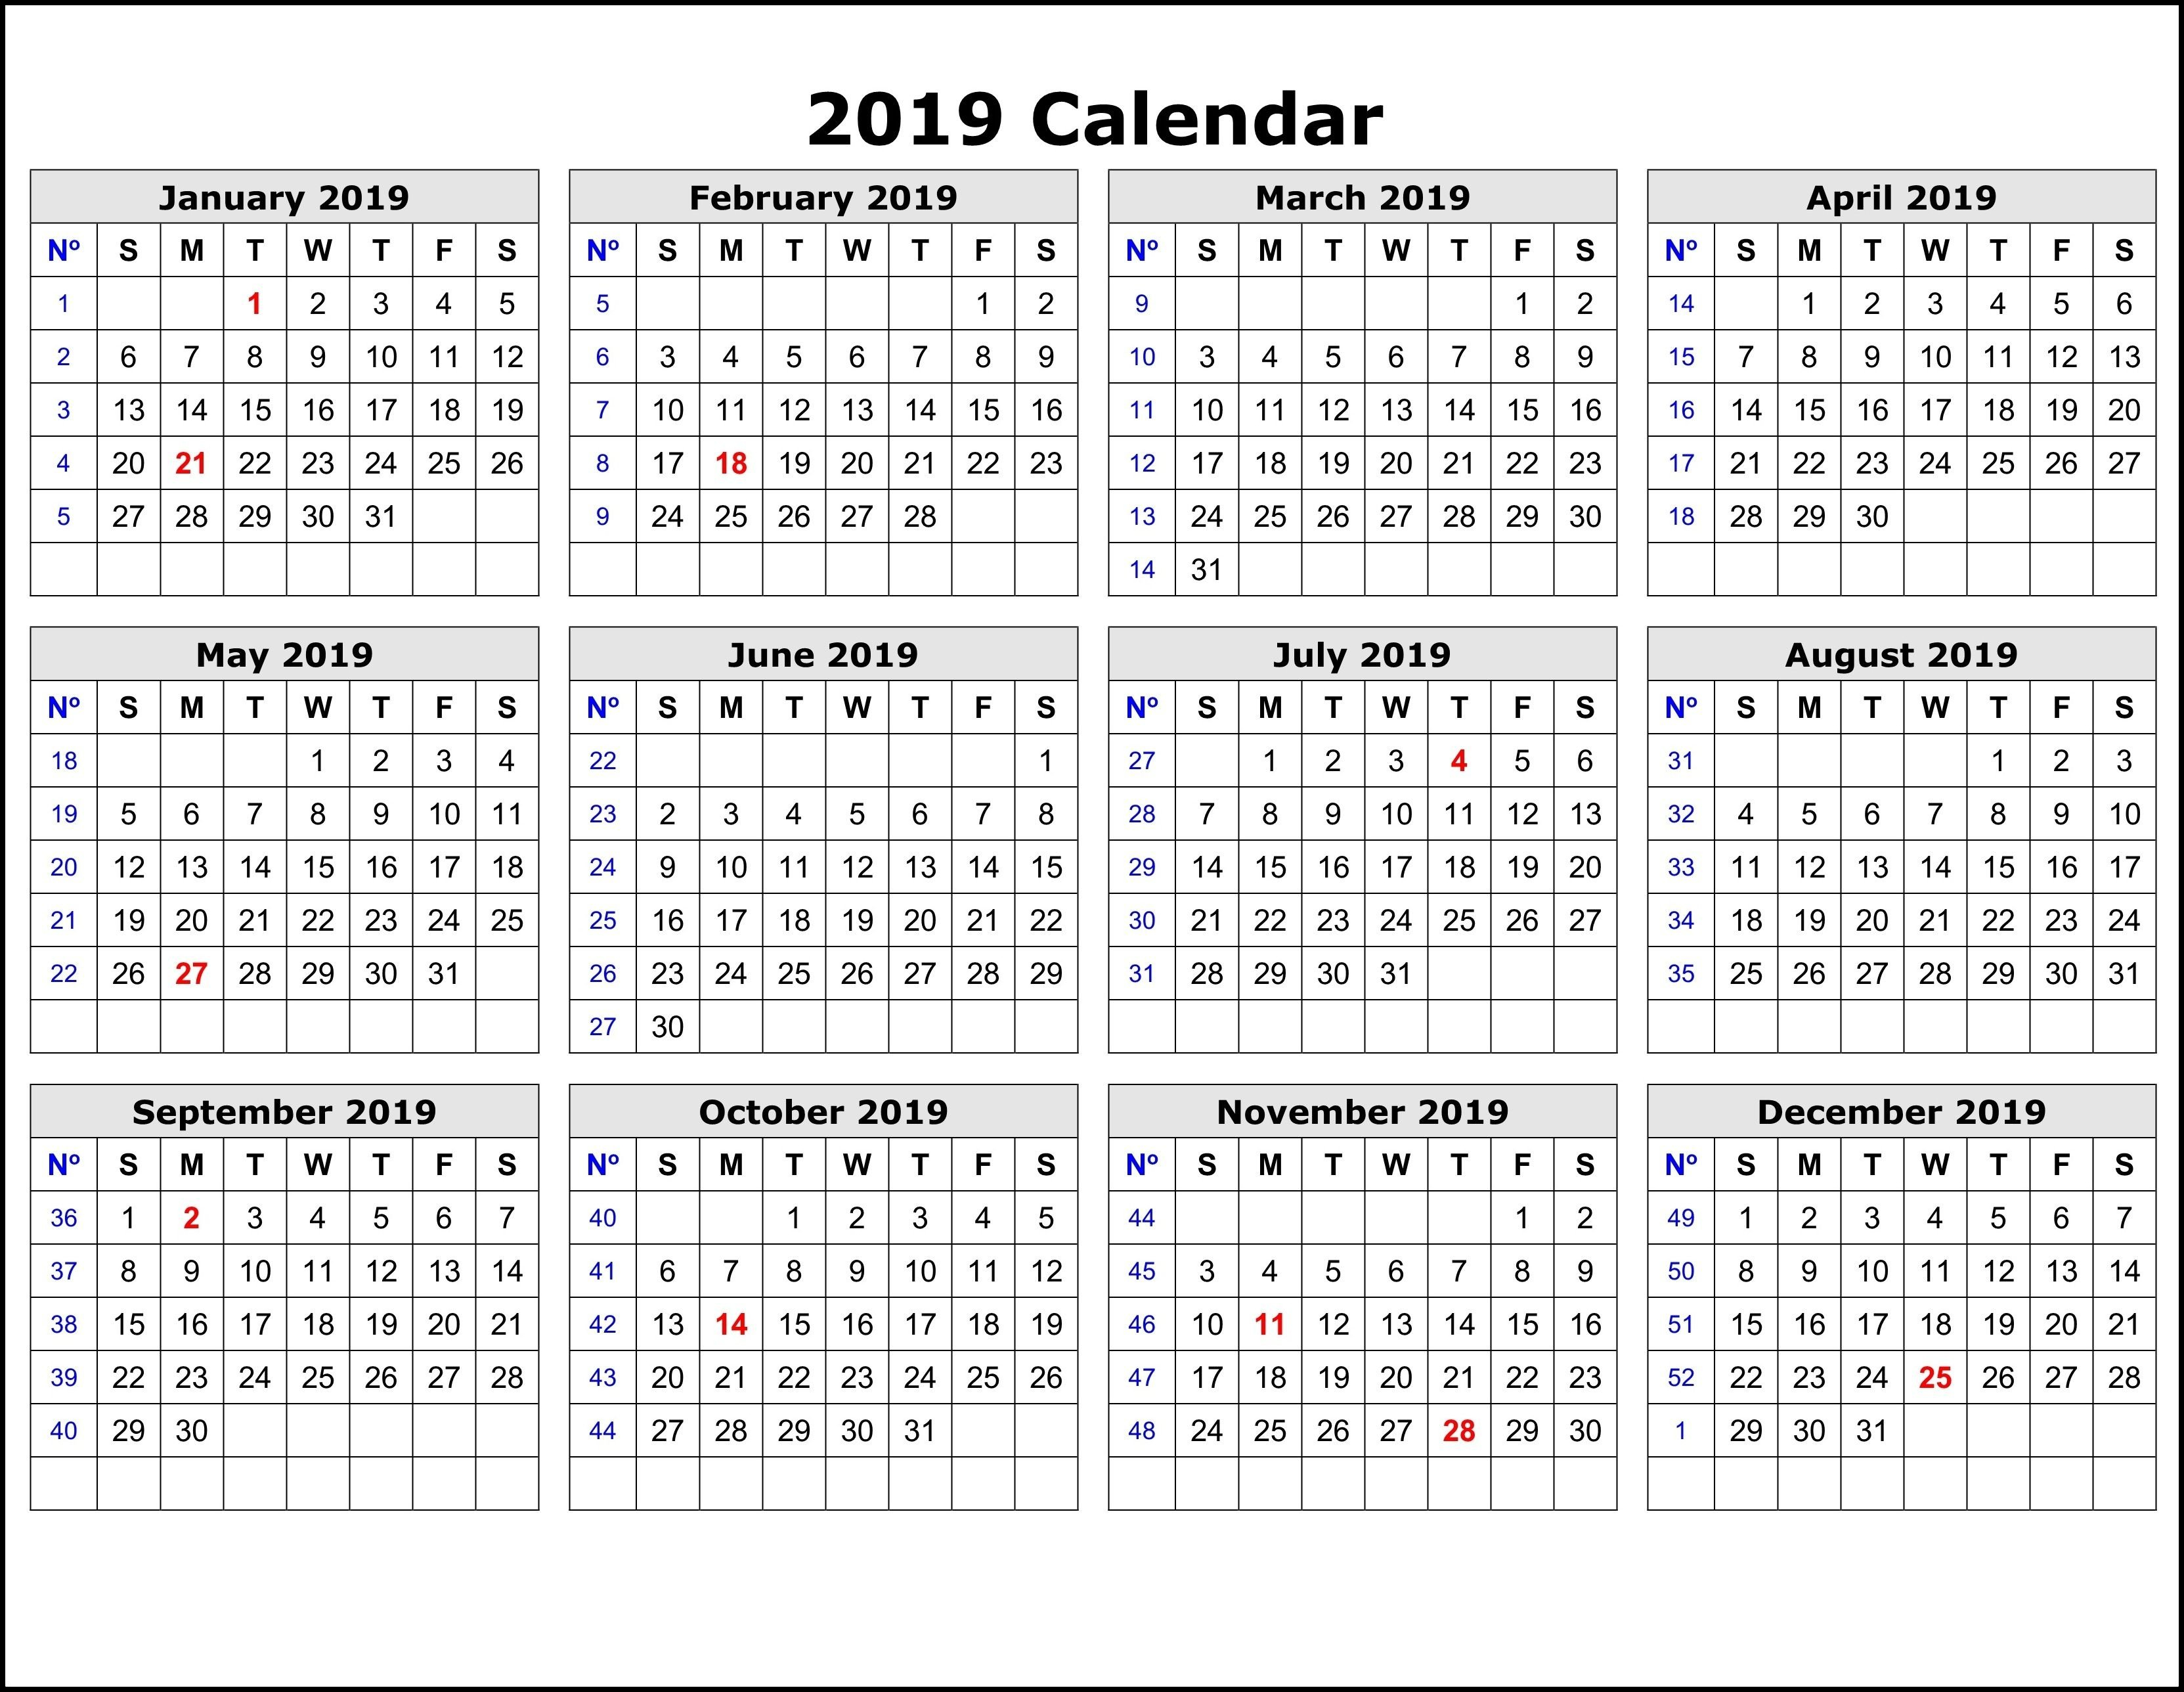 2019 Calendar Templateweek | Exercise | Printable Calendar Pages Calendar Week 40 2019